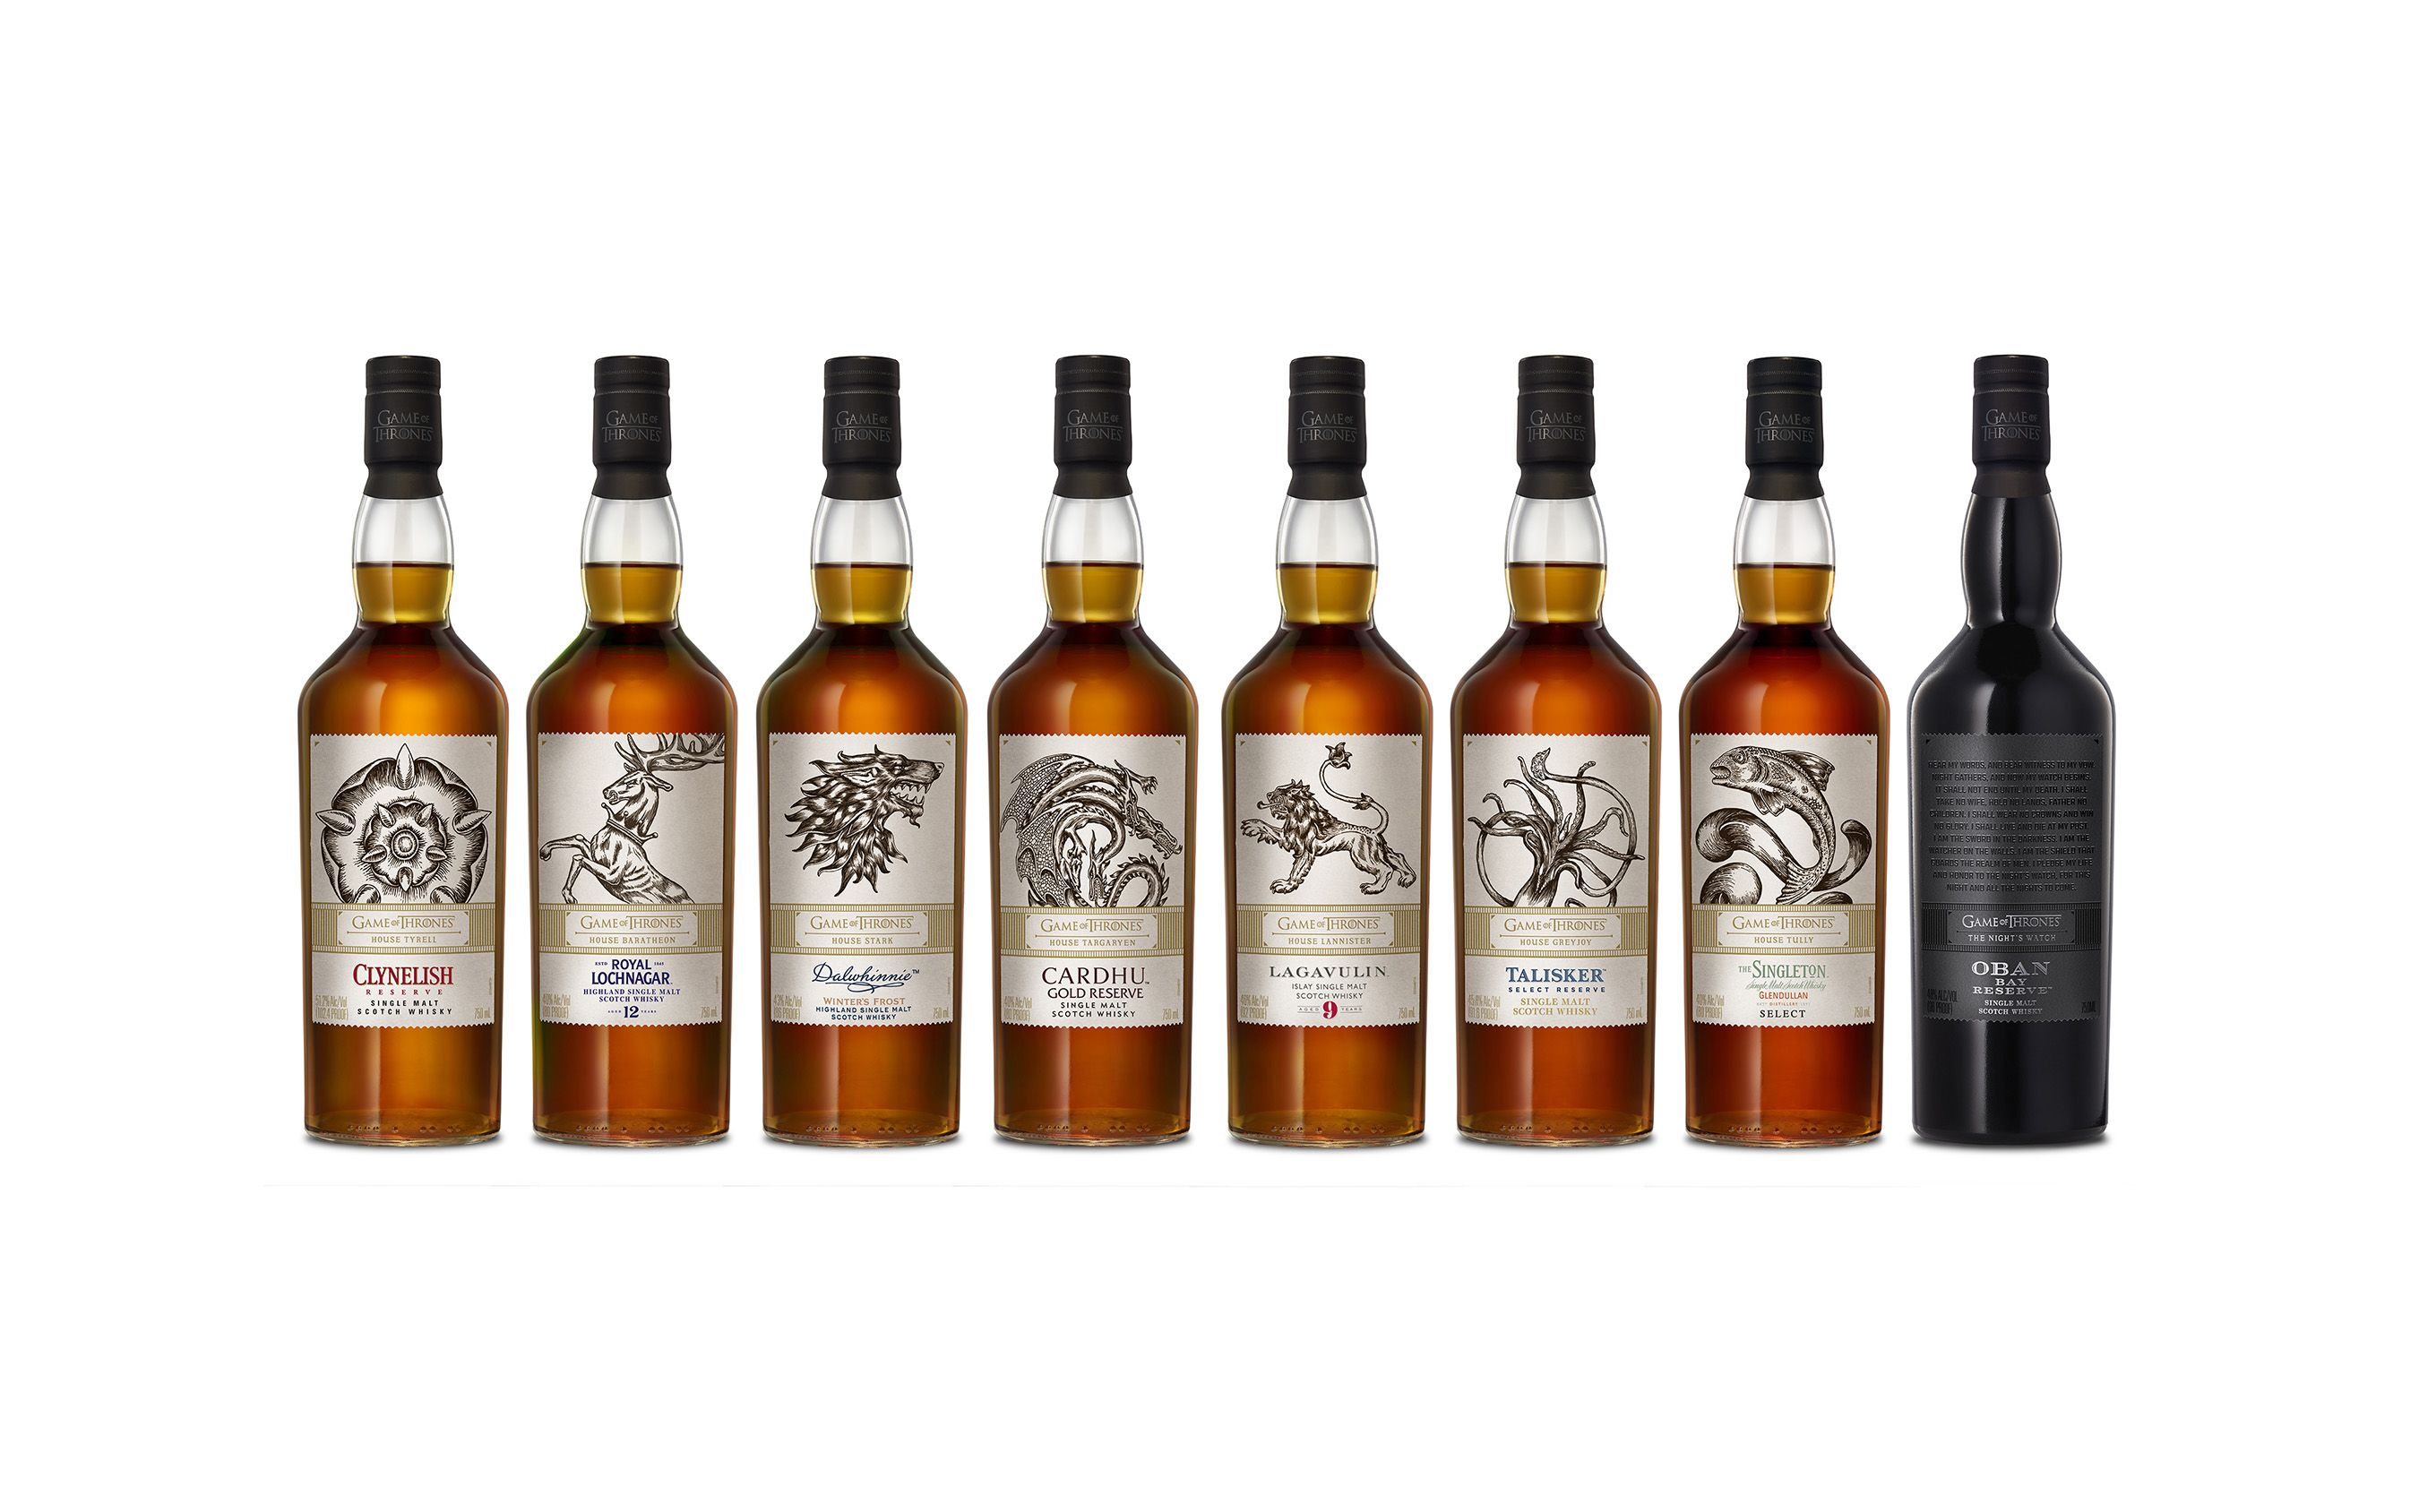 Game Of Thrones Whisky Is Here, One Bottle For Every Season photo